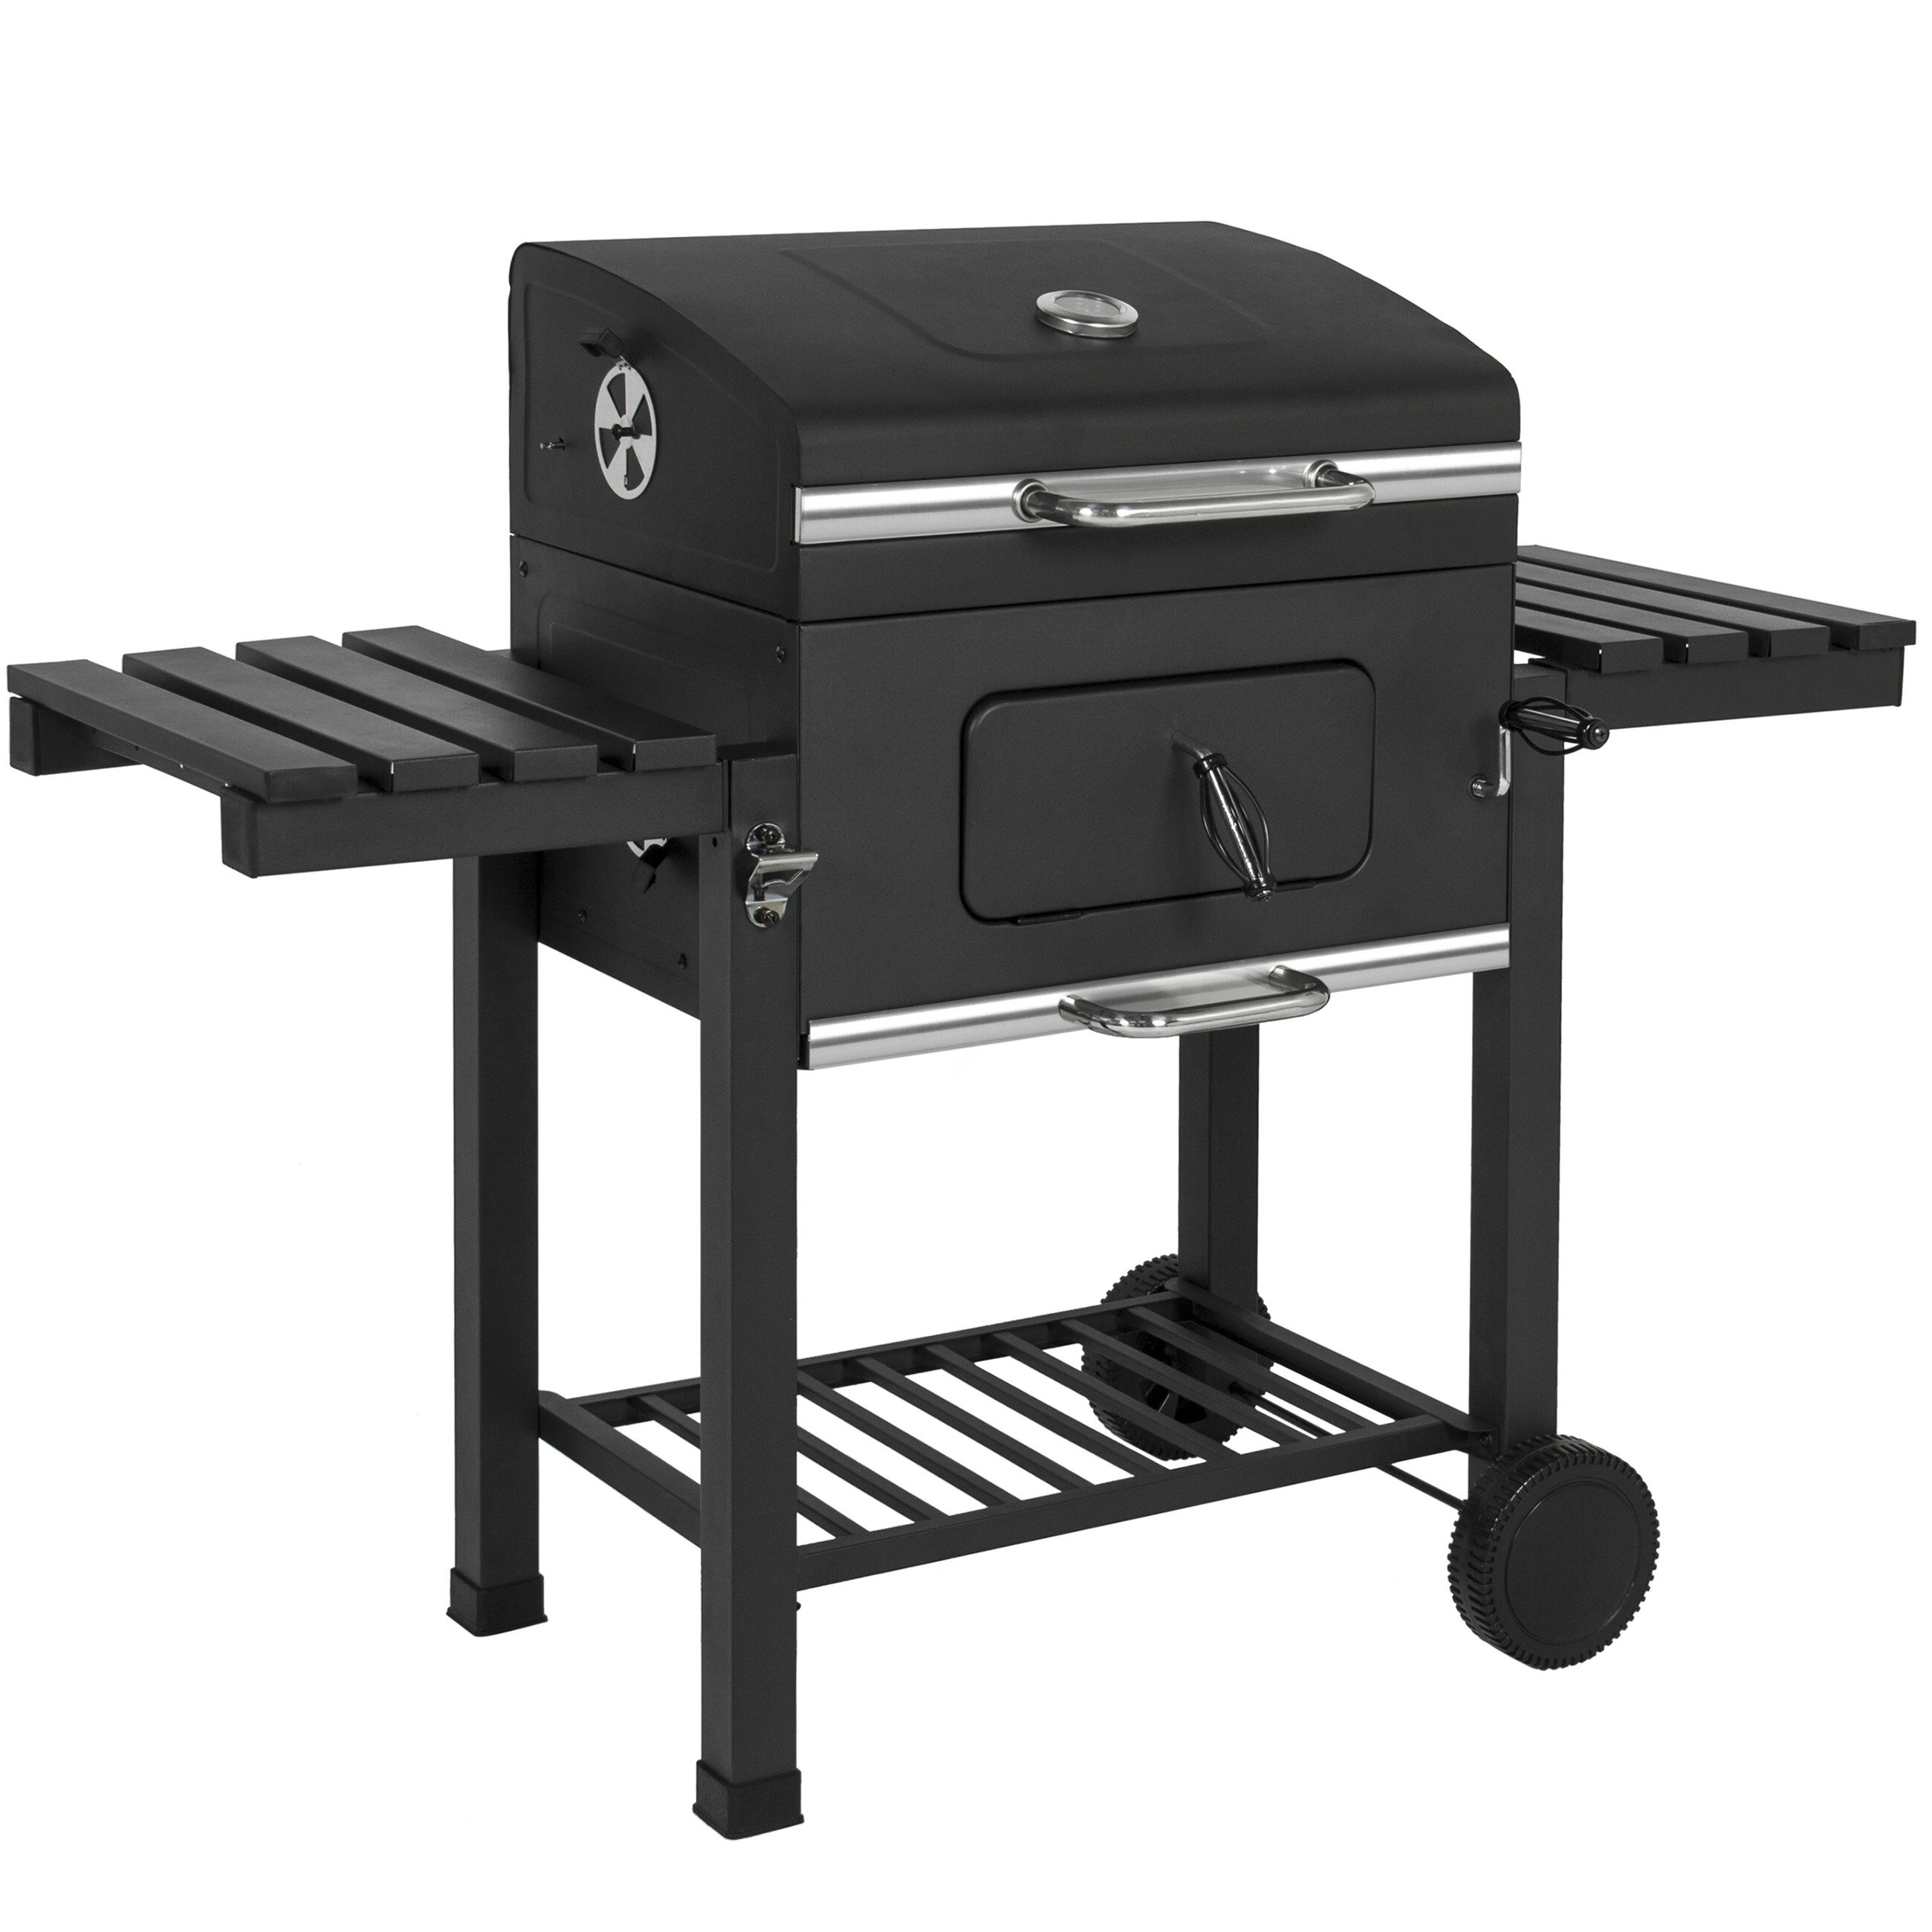 Best Choice Products Outdoor Backyard Premium Barbecue Charcoal Bbq Grill Black 0